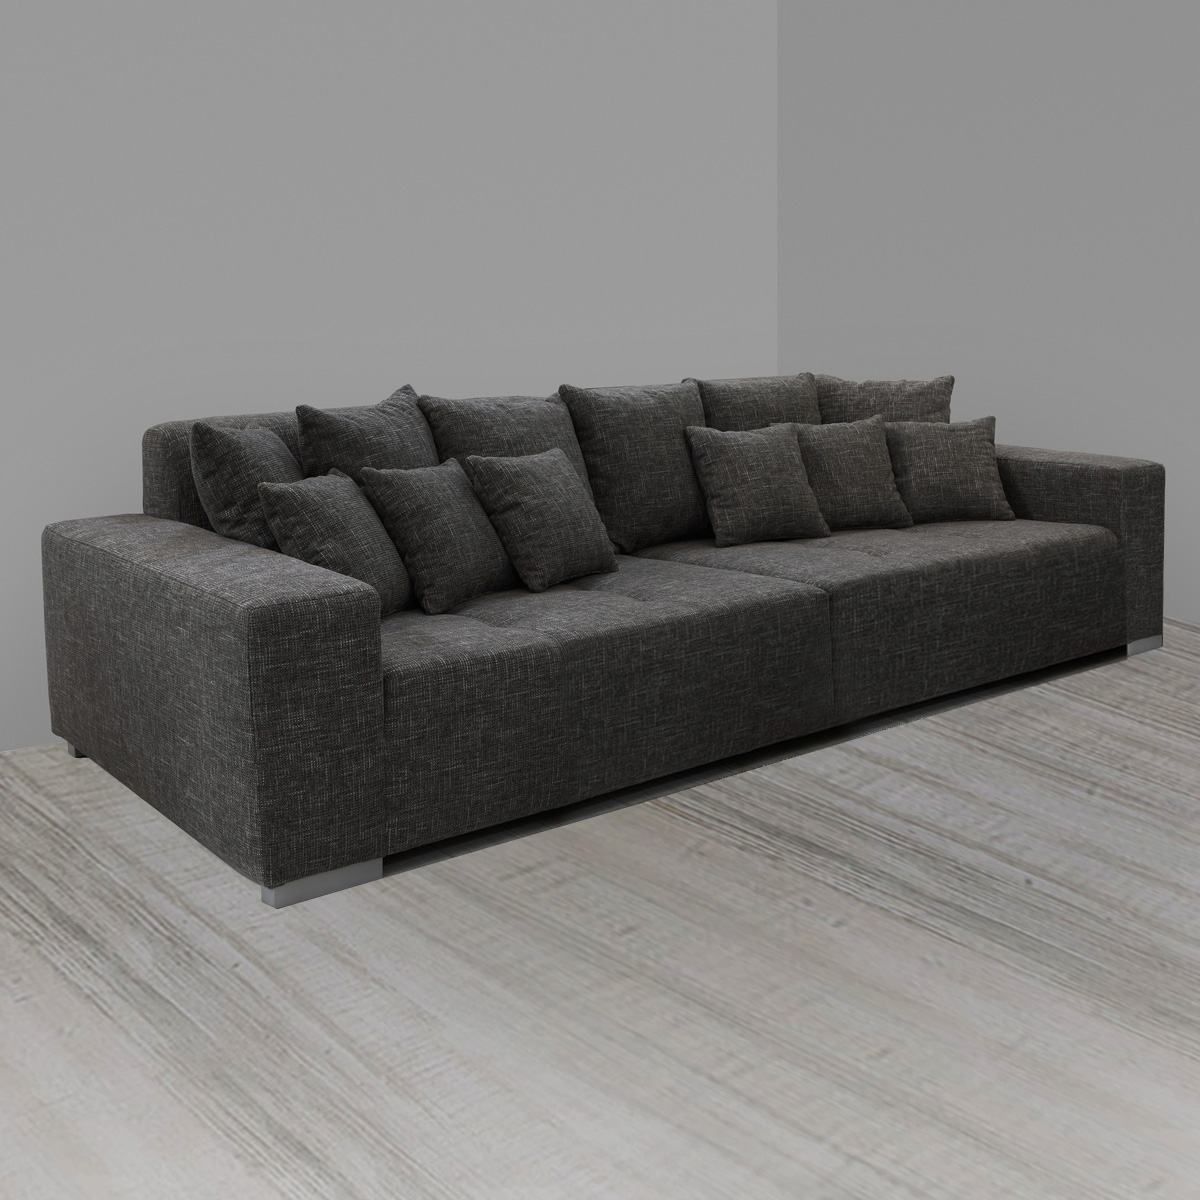 bigsofa arivos sofa polstersofa hocker polsterhocker beige braun grau wei ebay. Black Bedroom Furniture Sets. Home Design Ideas